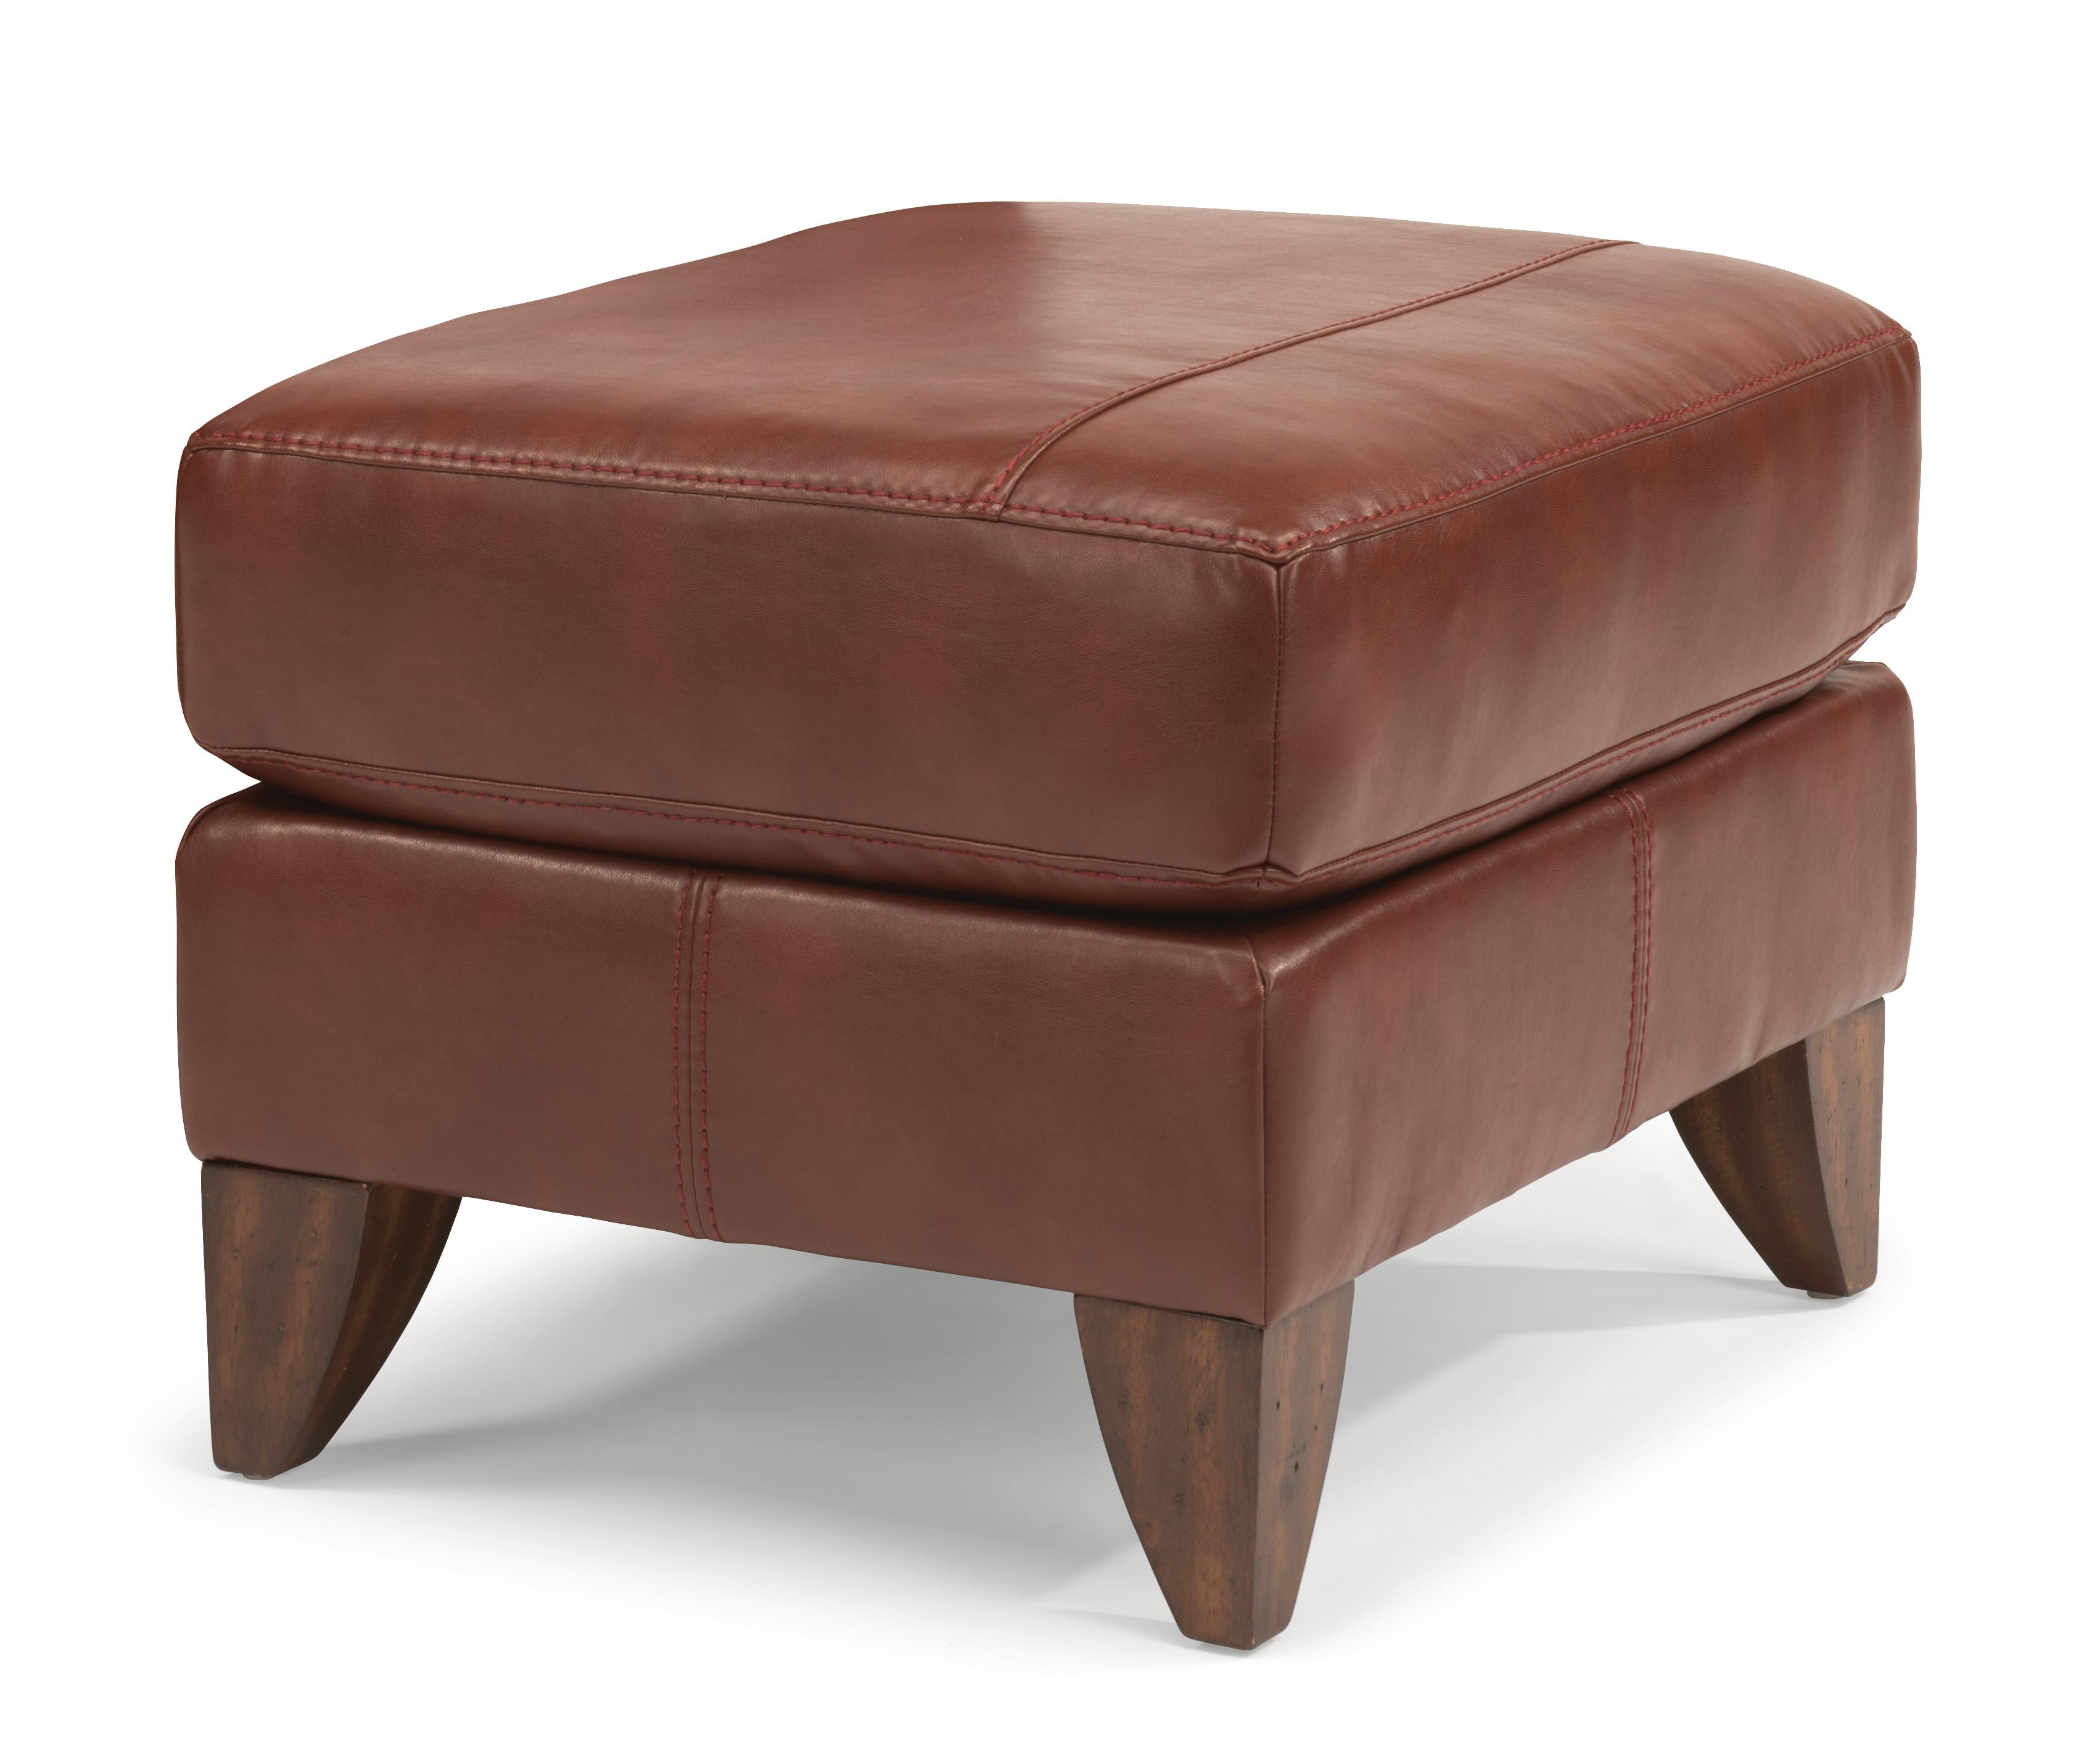 Flexsteel Accents Upholstered Ottoman - Item Number: N030C-08